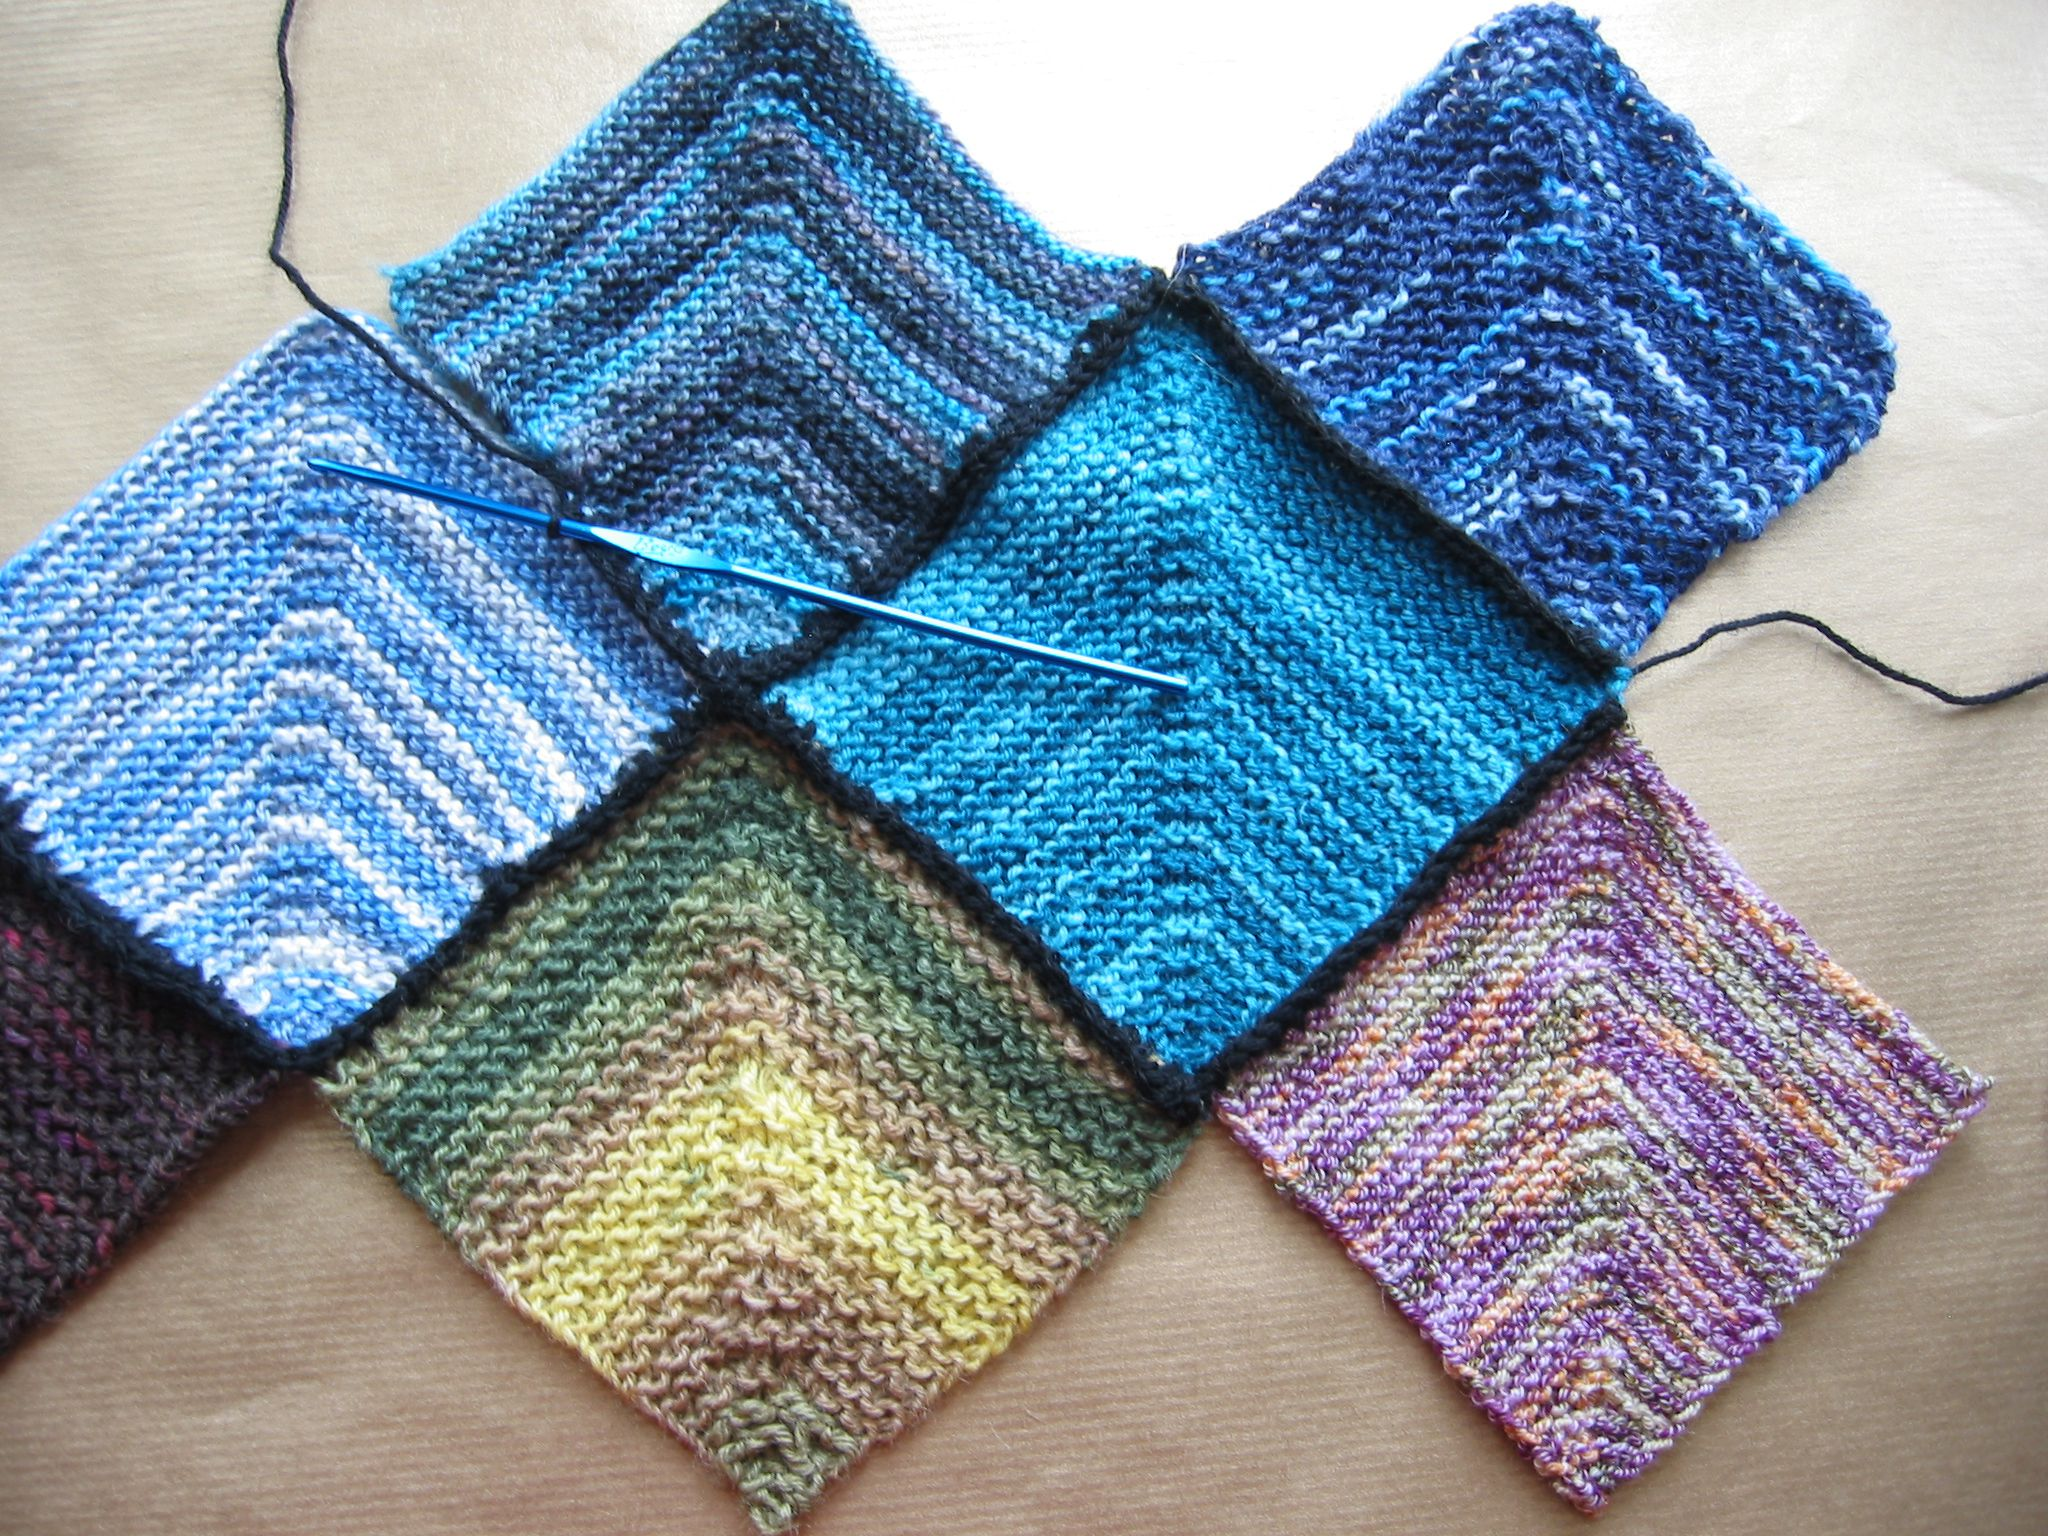 Your Handy Guide to Crocheting Afghan Stitches